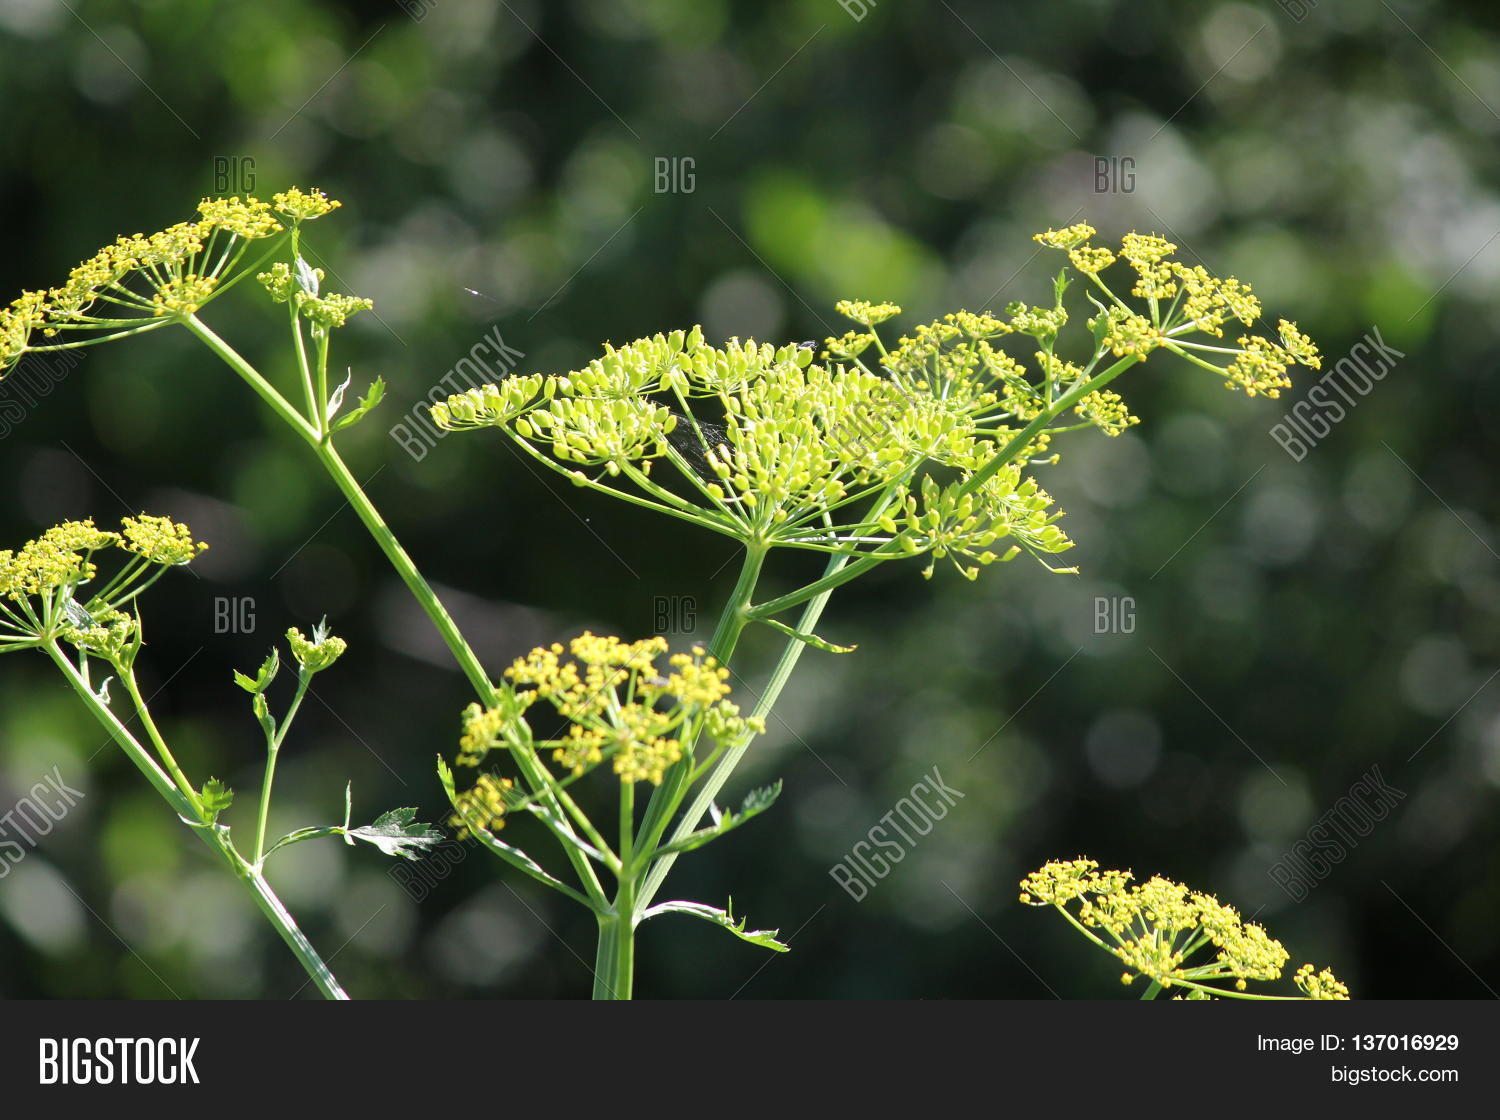 Yellow Head Seeds Image Photo Free Trial Bigstock